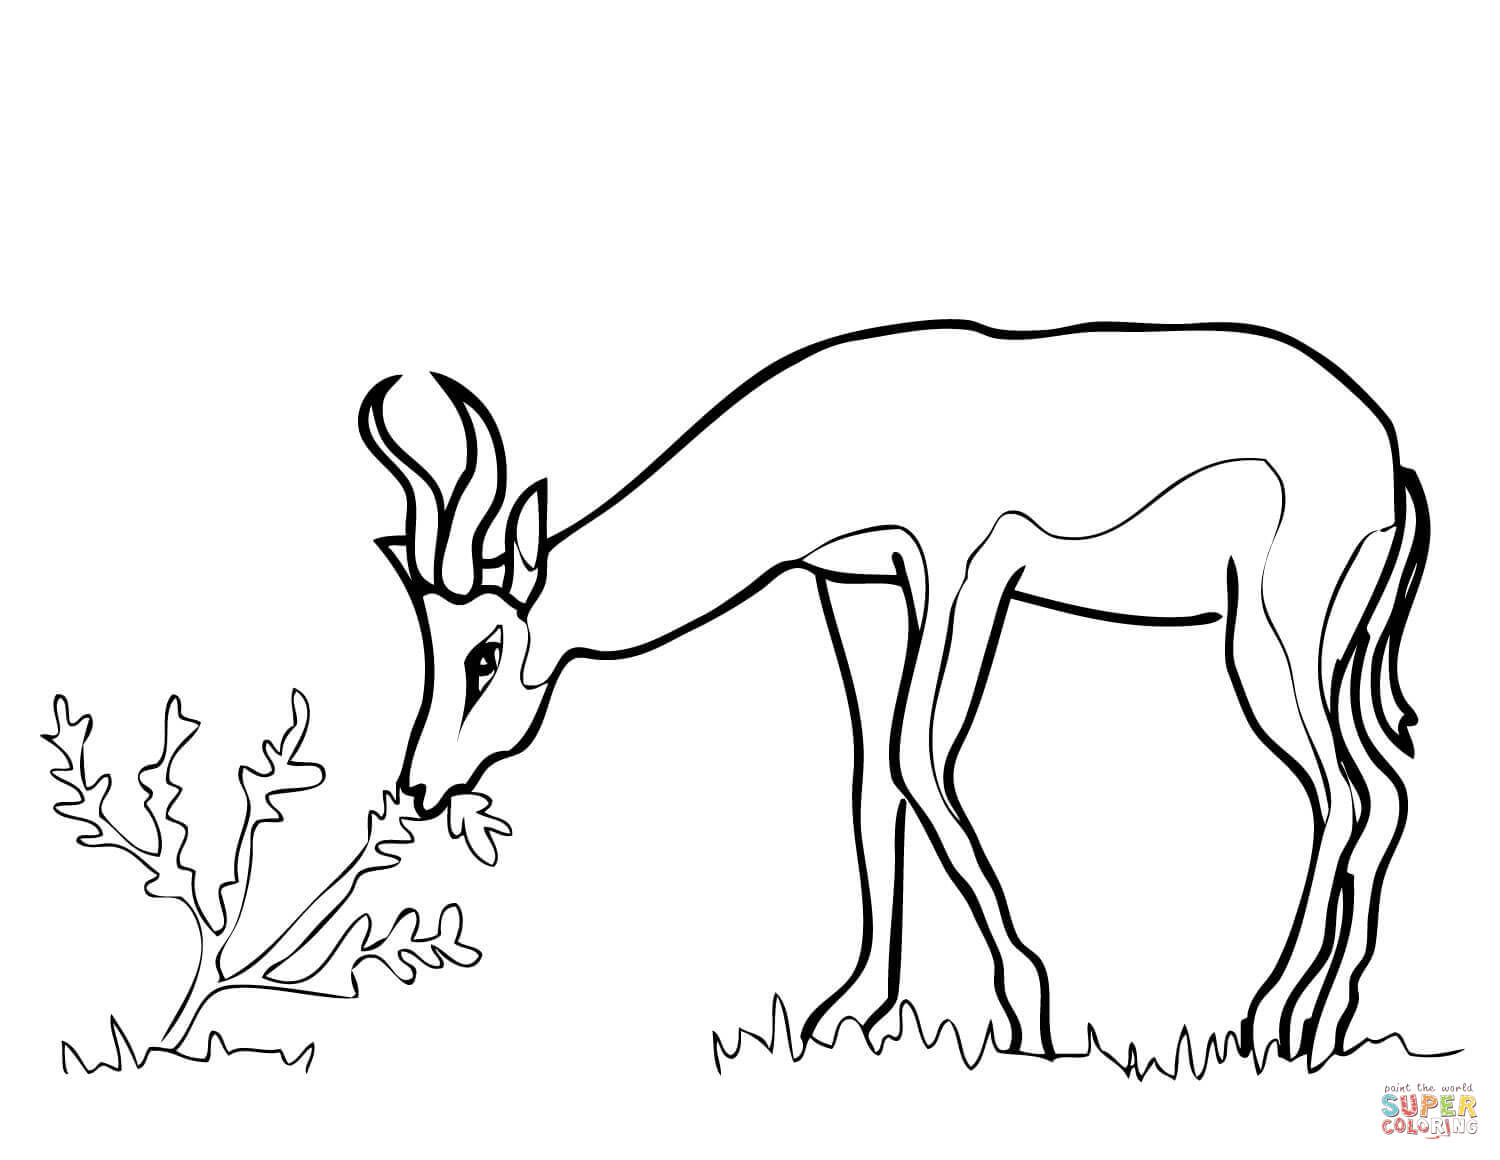 south africa coloring sheet flag south africa flags coloring pages for kids to print south coloring africa sheet